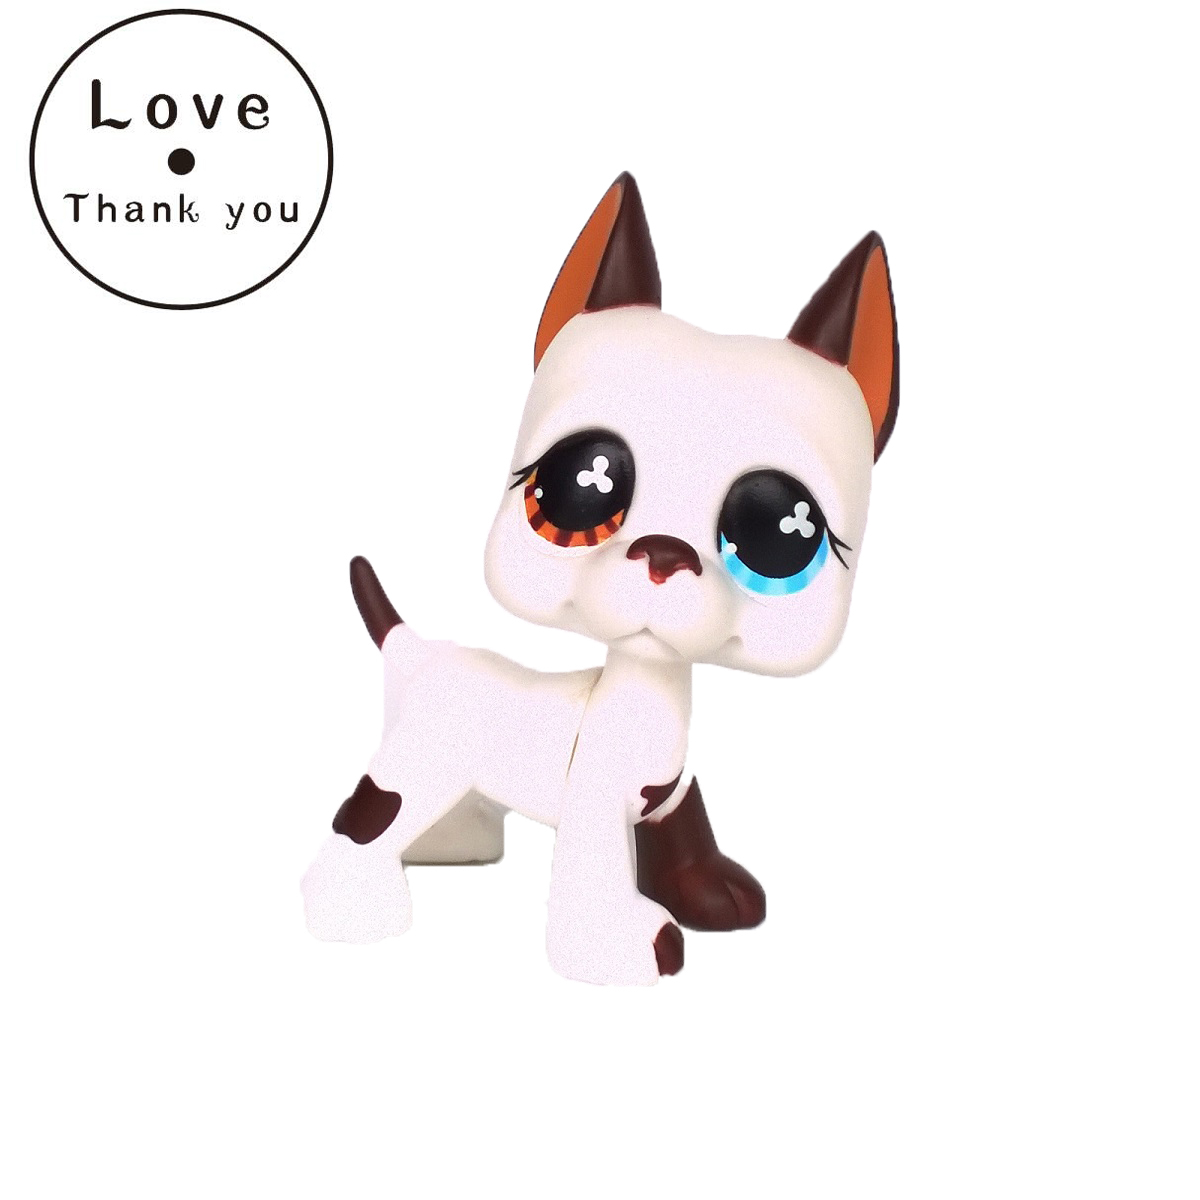 pet shop toys Great Dane Dog #577 Blue Brown Flowered Eyes White Puppy Figure Child Toy Without Magnet Dog Gift pet shop lps toys great dane dog 577 blue brown flowered eyes white puppy figure child toy without magnet dog gift